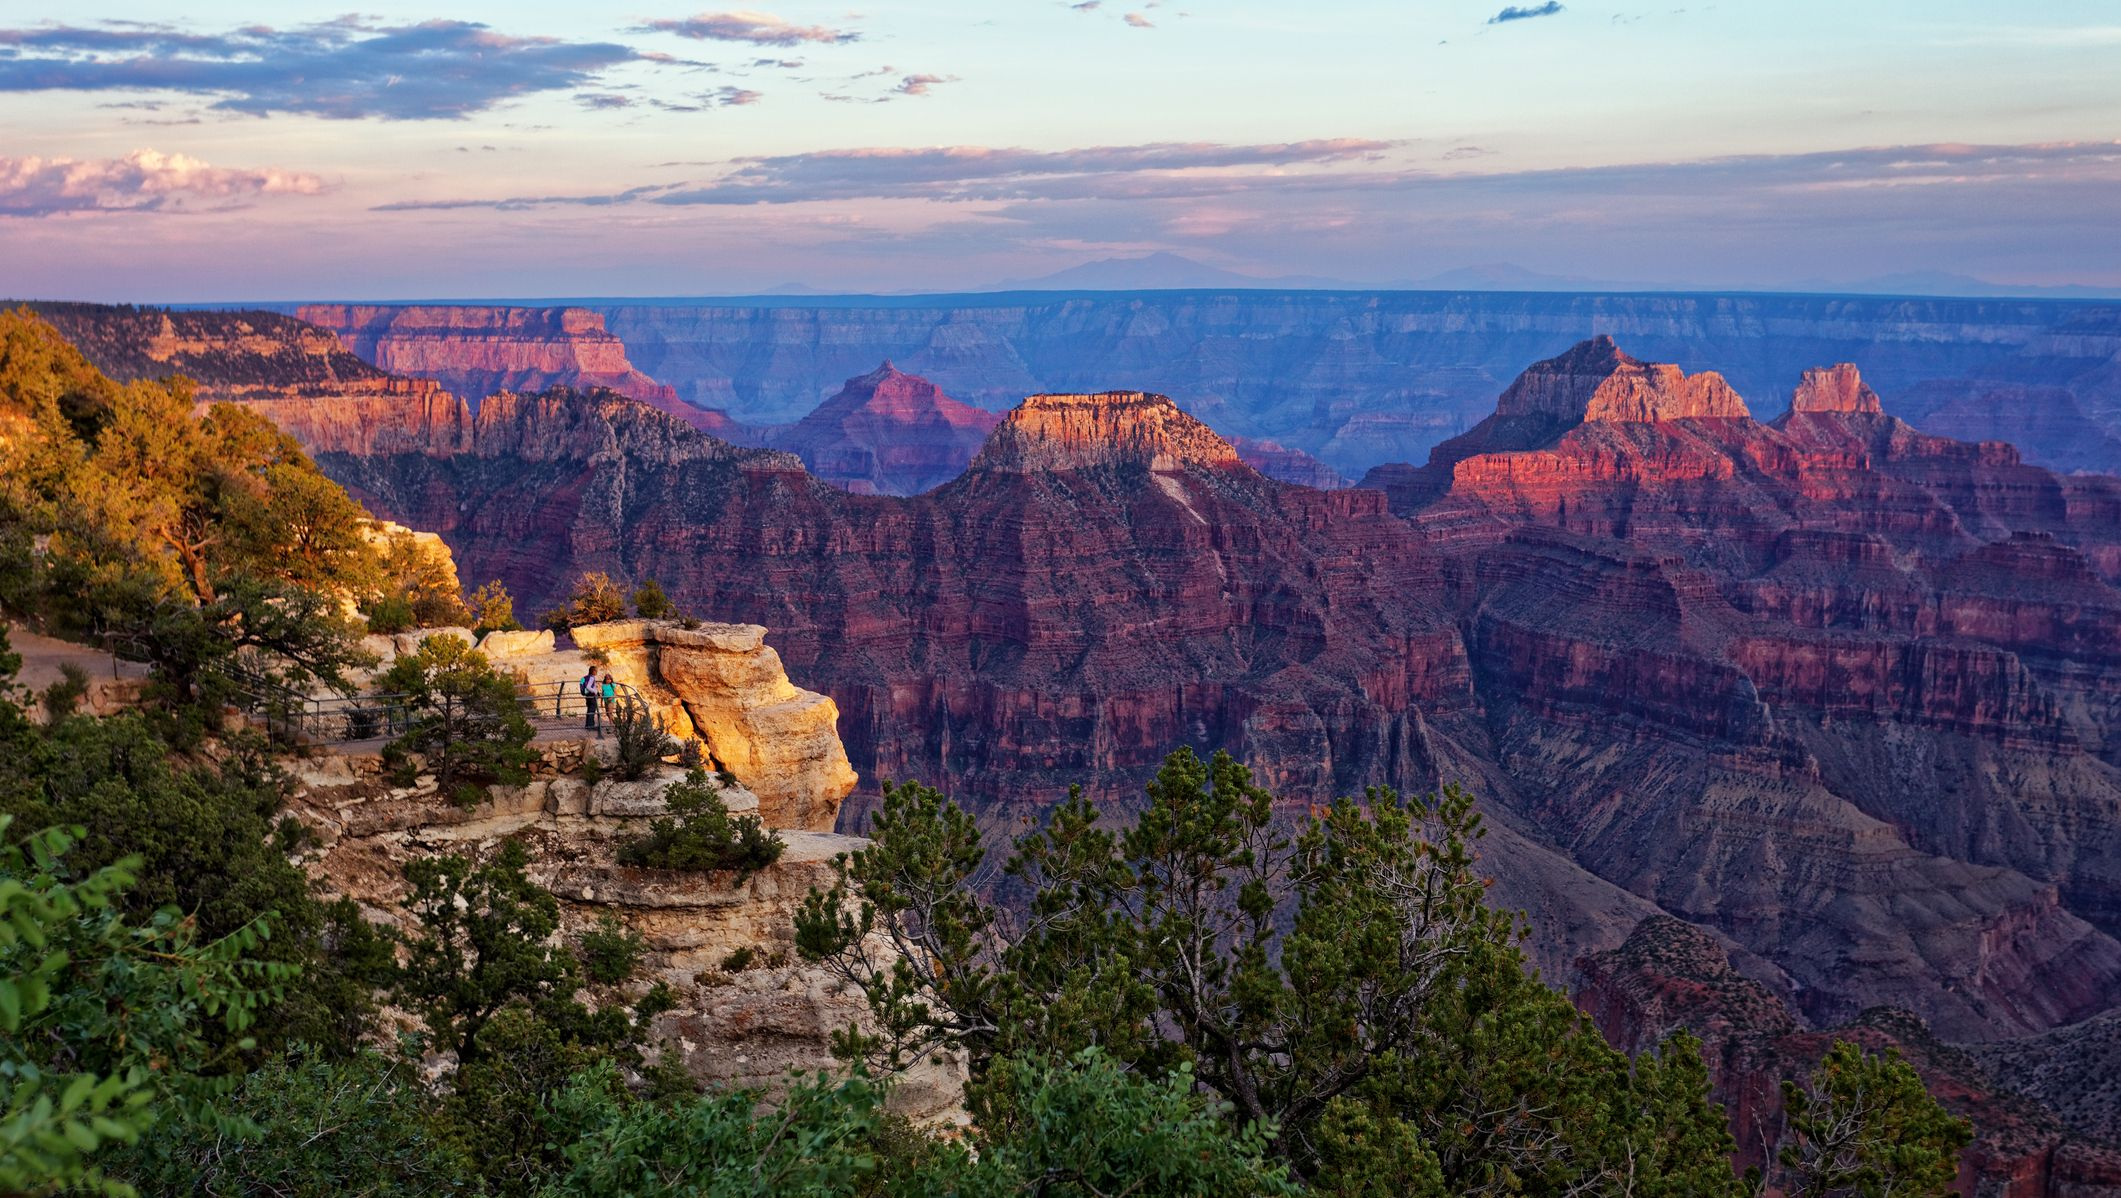 Sunset at Bright Angel area of Grand Canyon North Rim